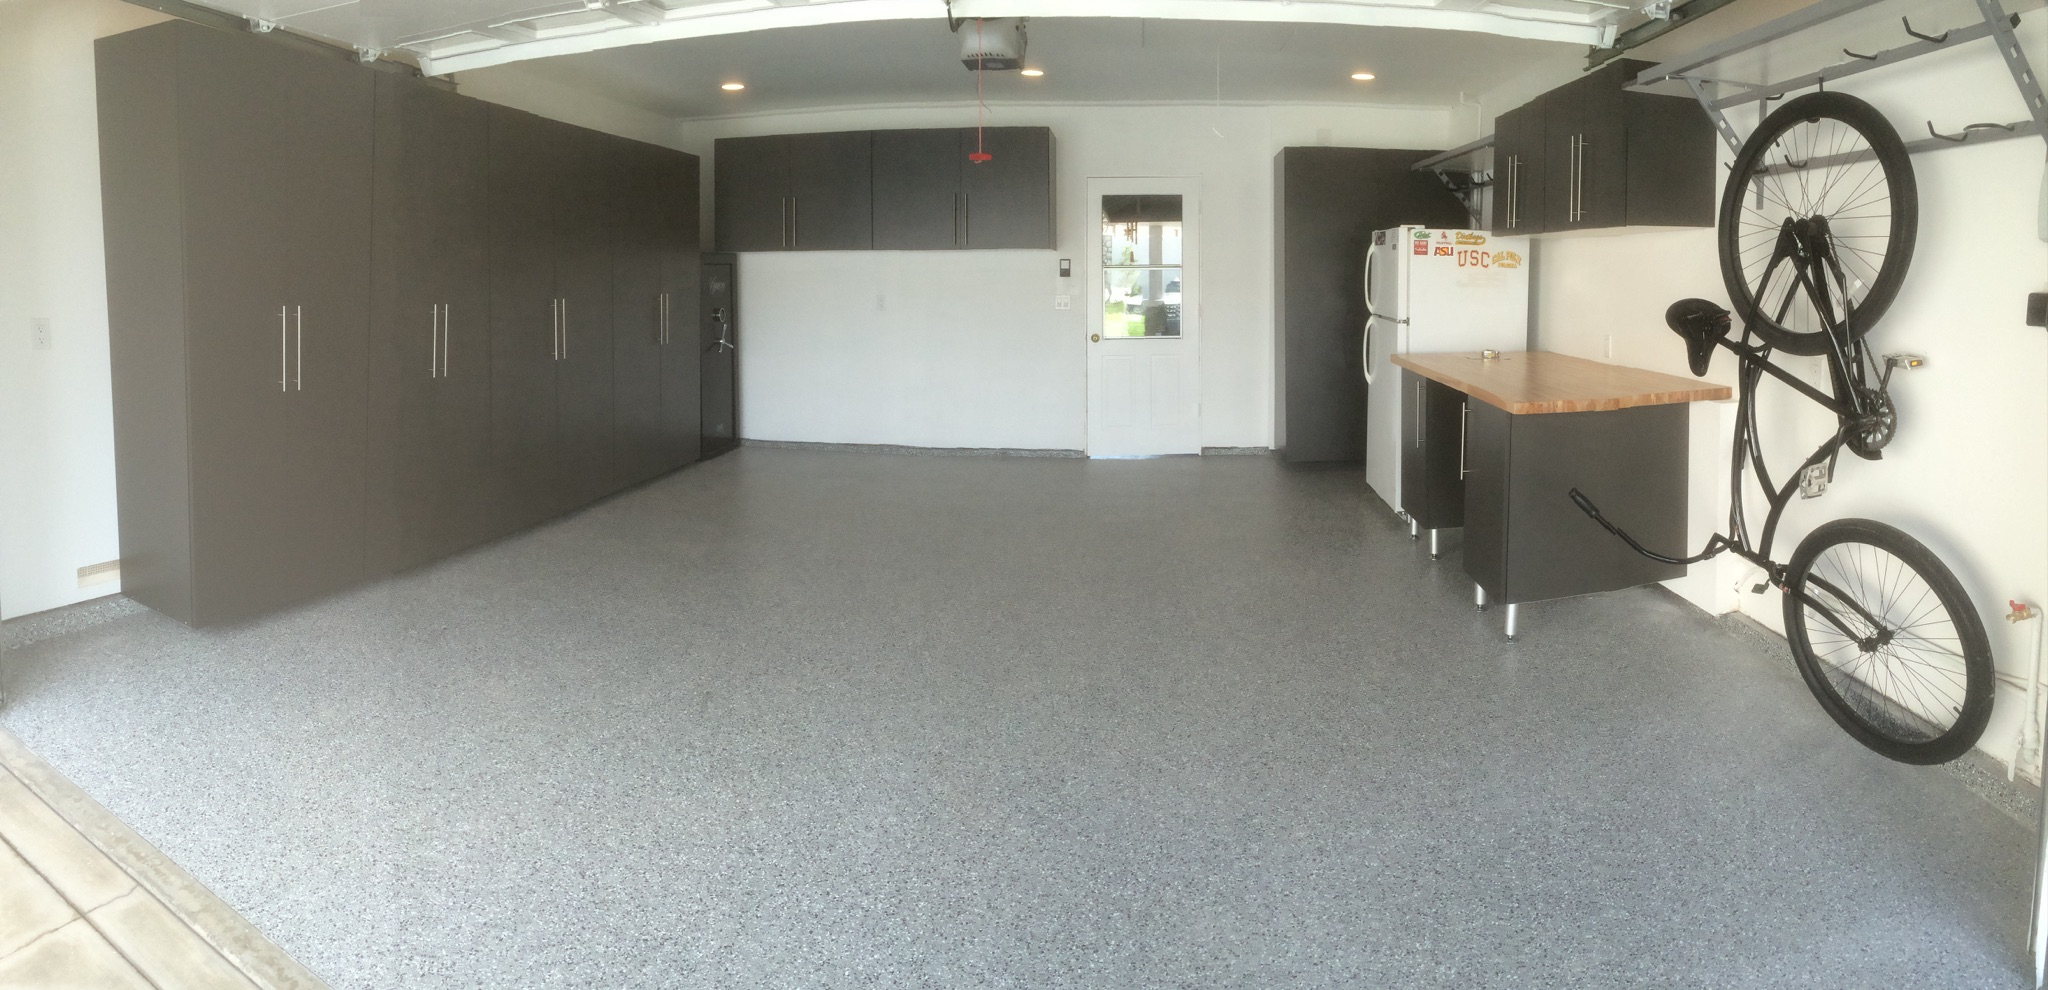 Garage Cabinets Dana Point